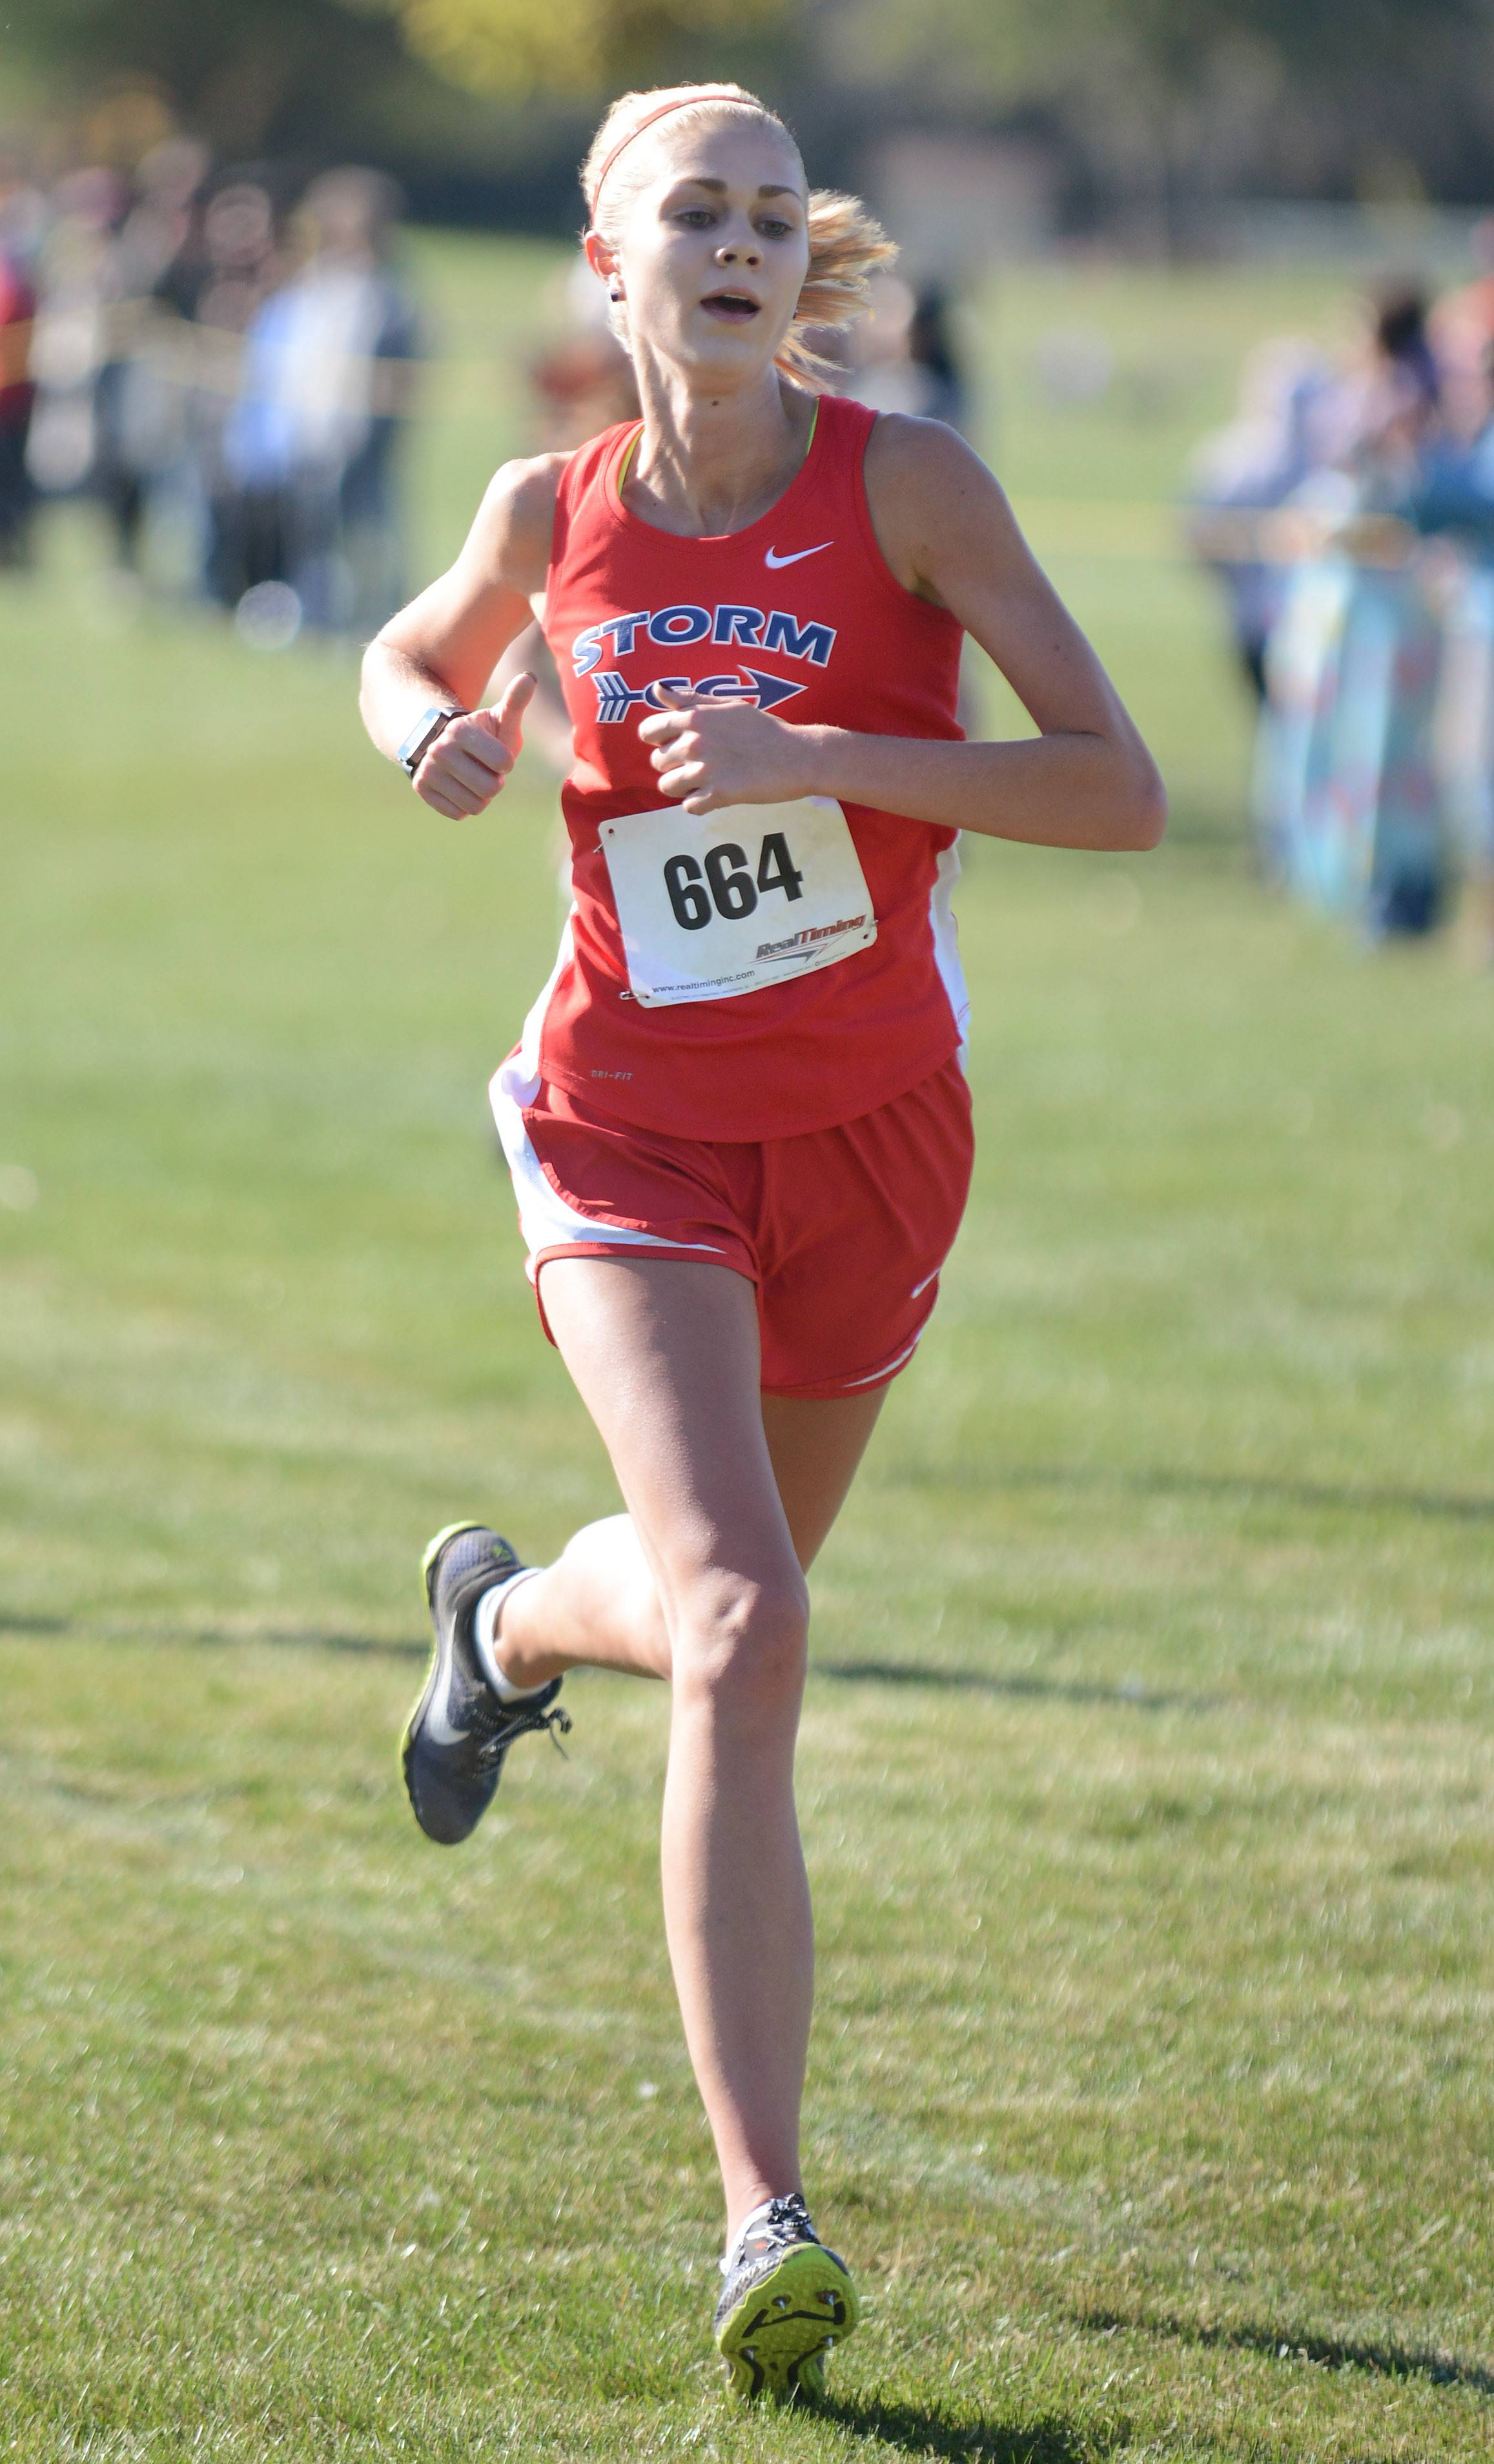 South Elgin's Sam Czuprynski comes in first for her team in the girls varsity race in the Upstate Eight cross country meet at Sunrise Park in Bartlett Saturday.